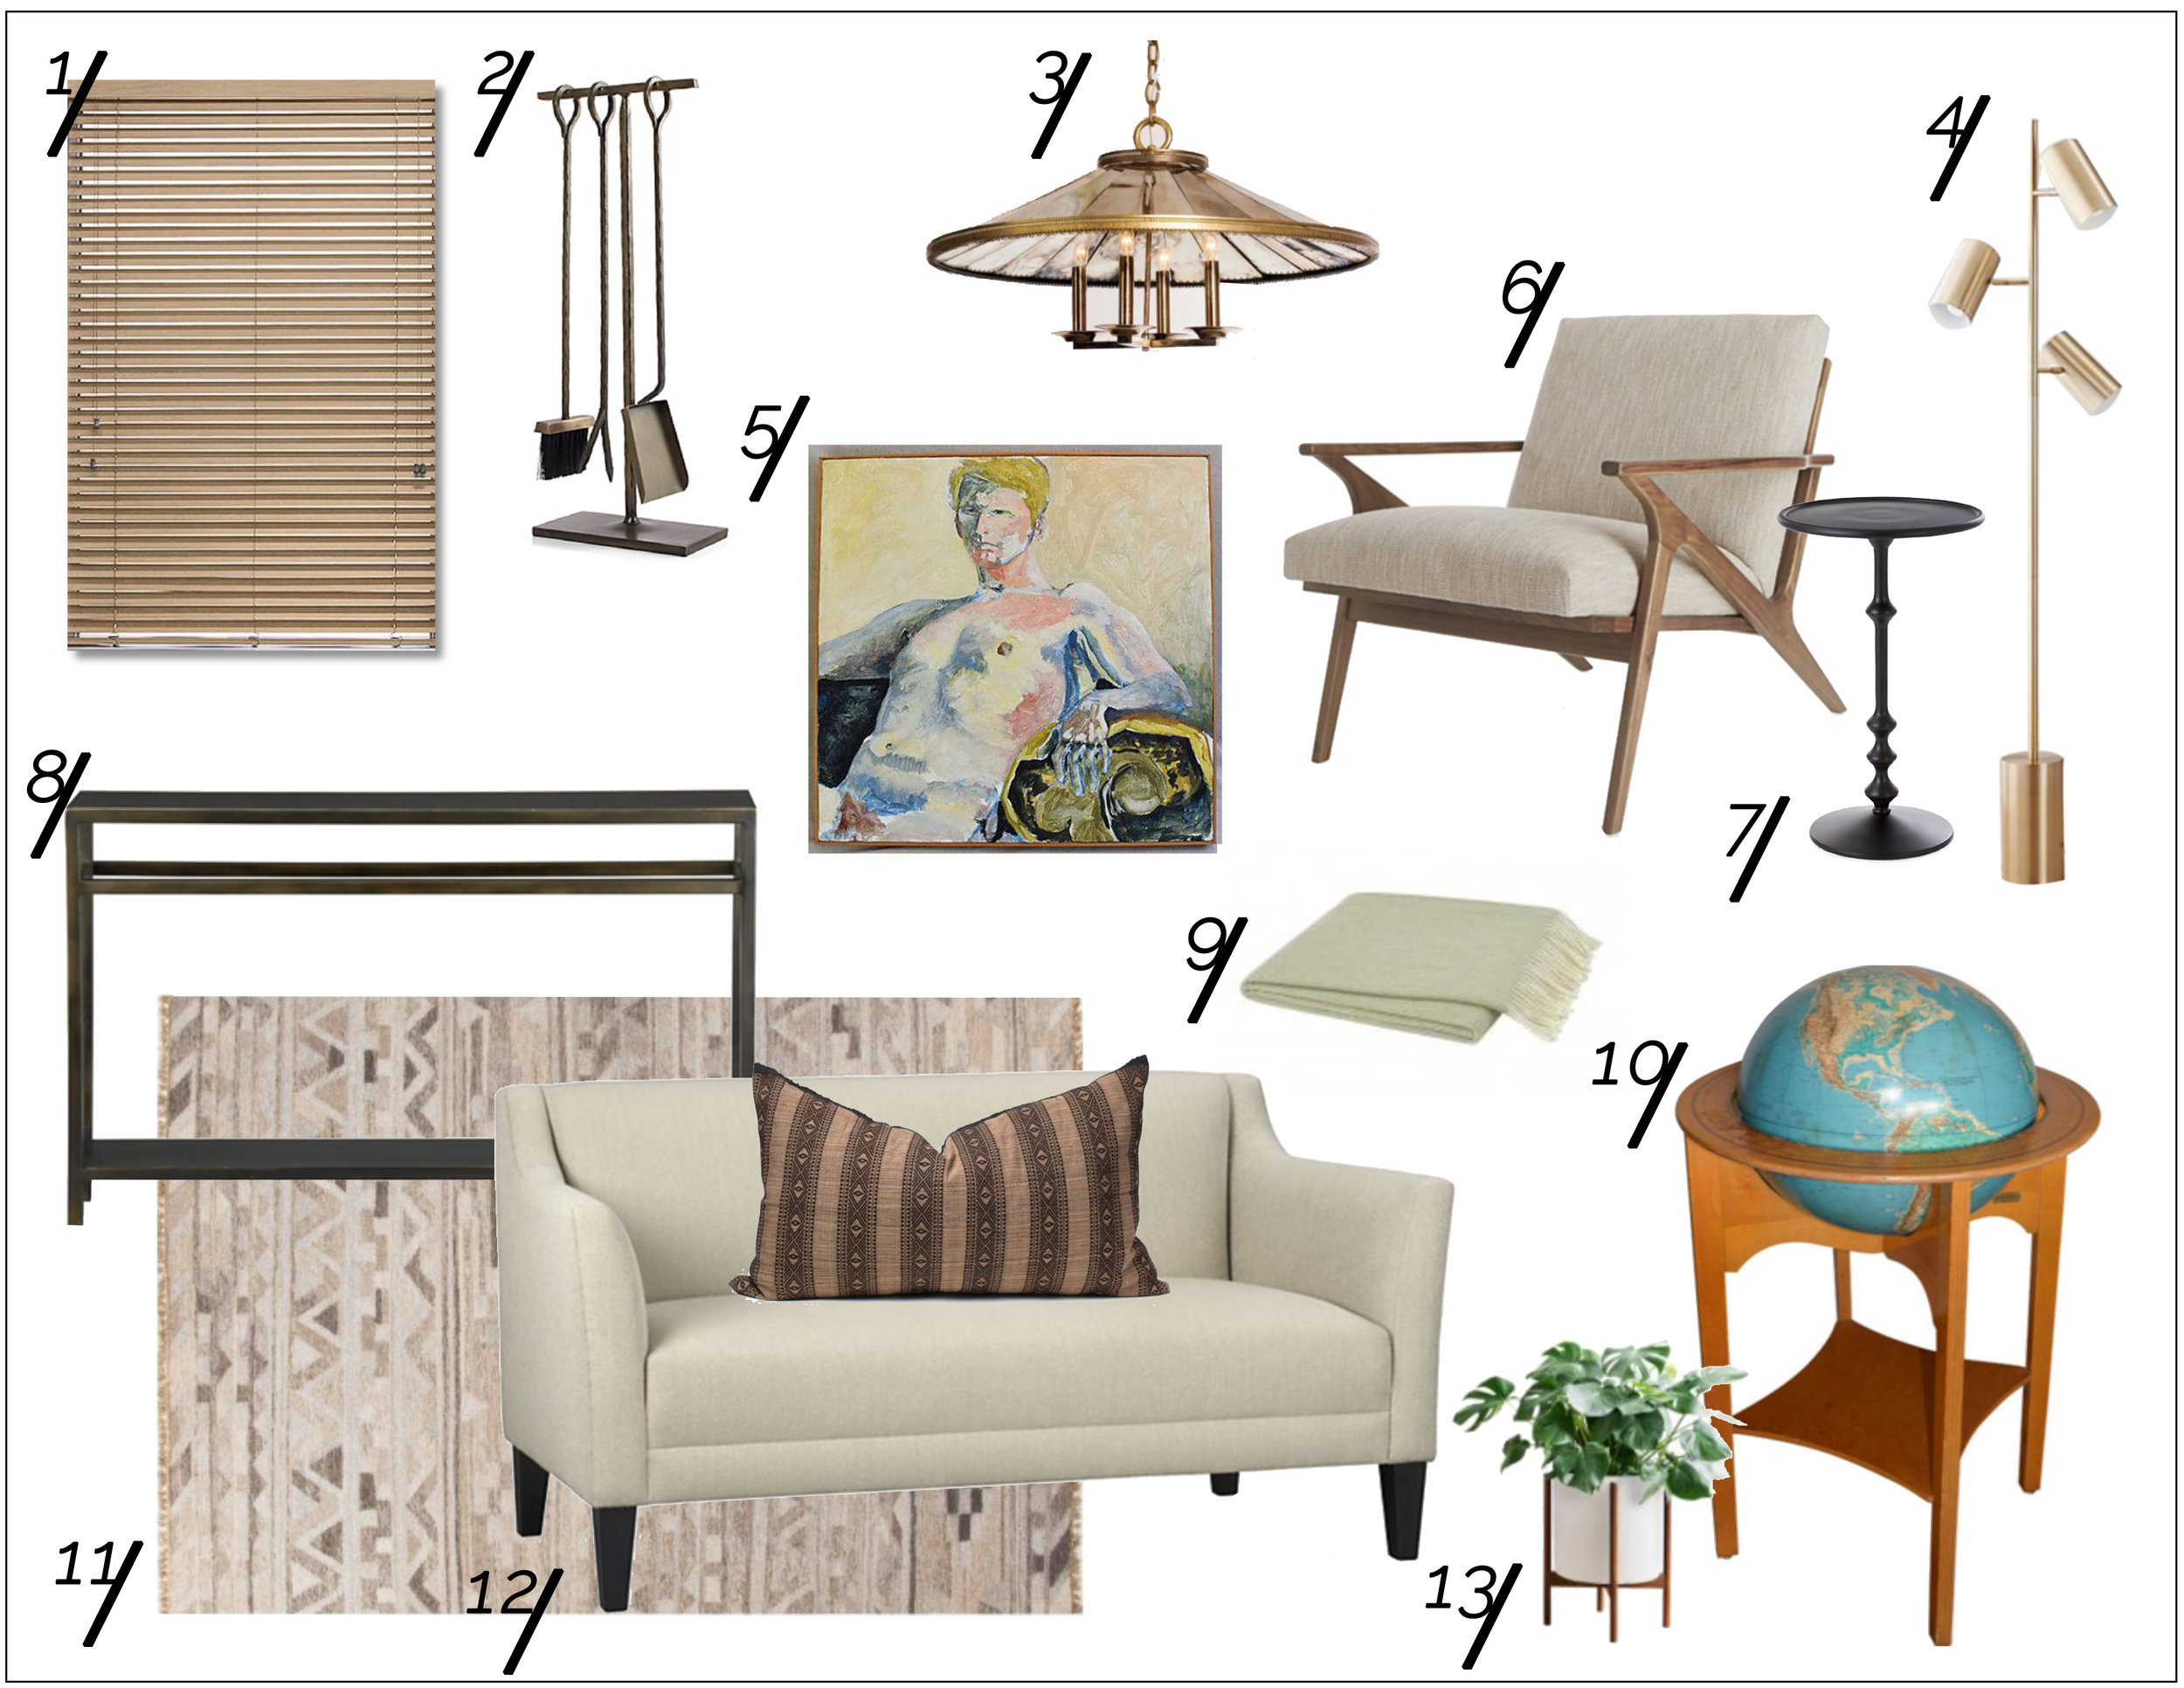 Modernized Mid-Century Living Room Shopping Guide  xo, Ebright Design